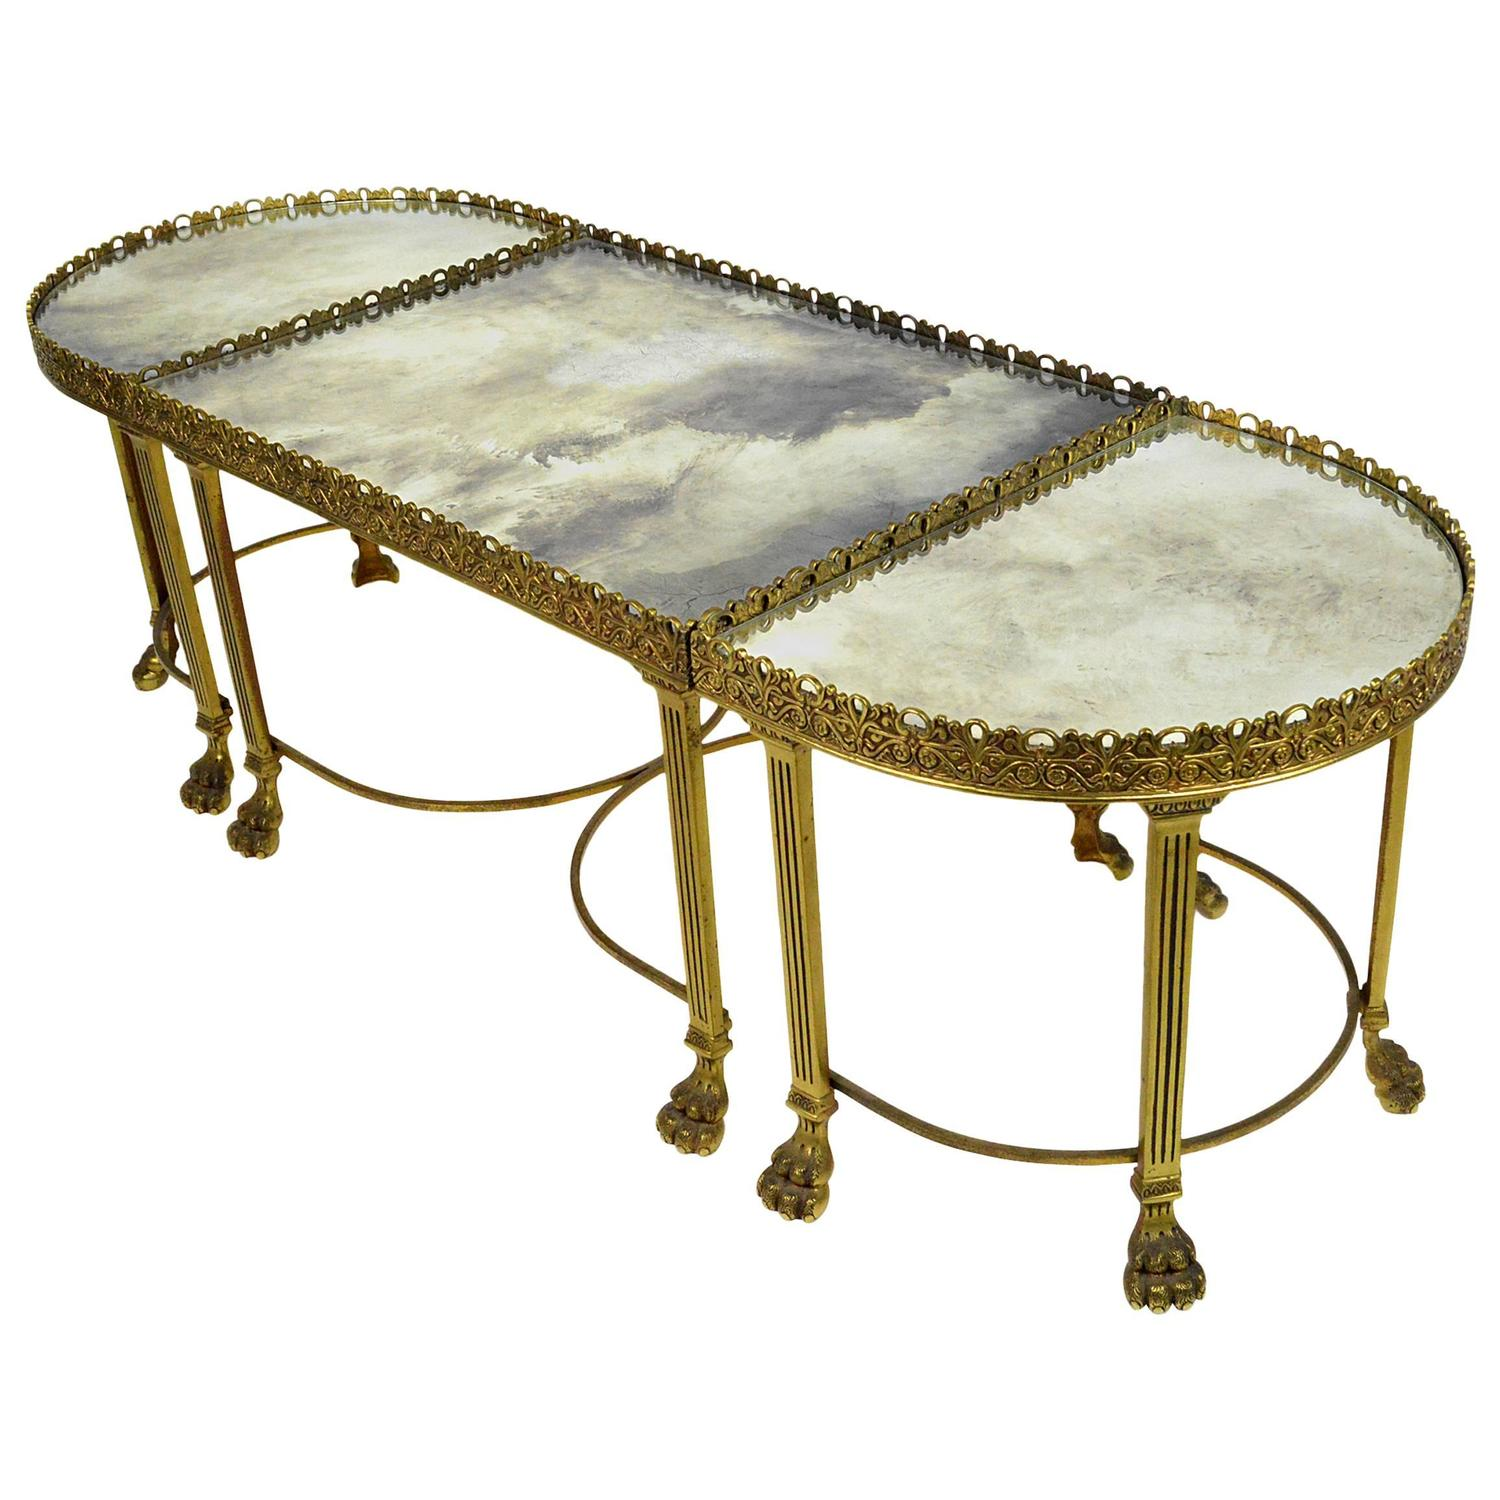 Neoclassical Style Bronze Three Part Coffee Table For Sale at 1stdibs